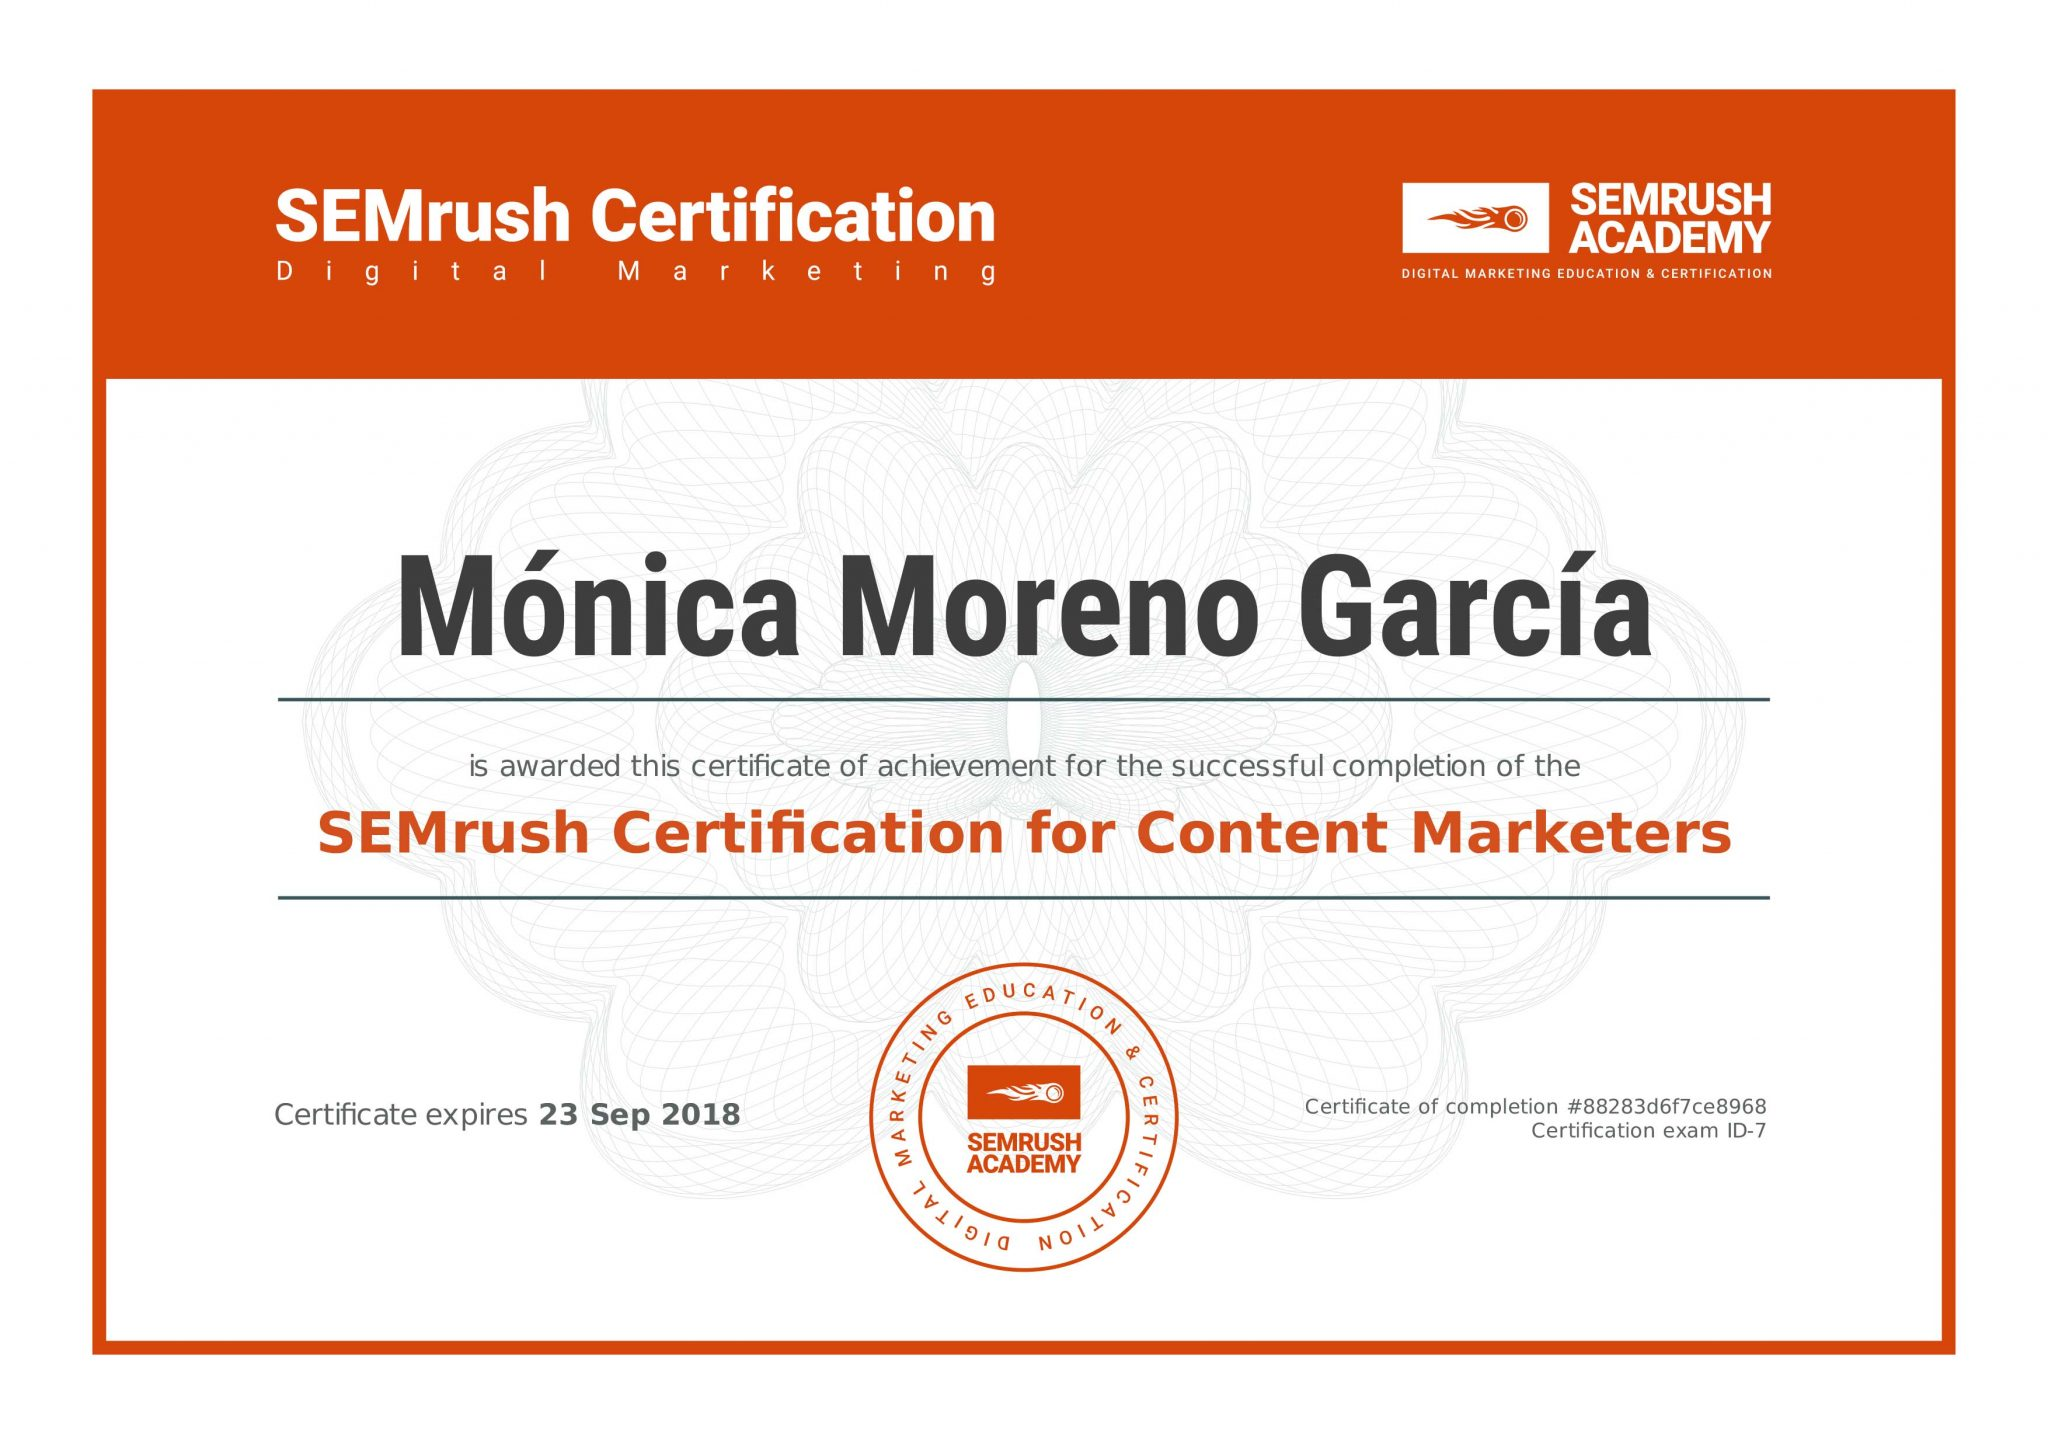 SEMrush - Certification for Content Marketers - Posicionamiento Web - SEO - Utrera (Sevilla)